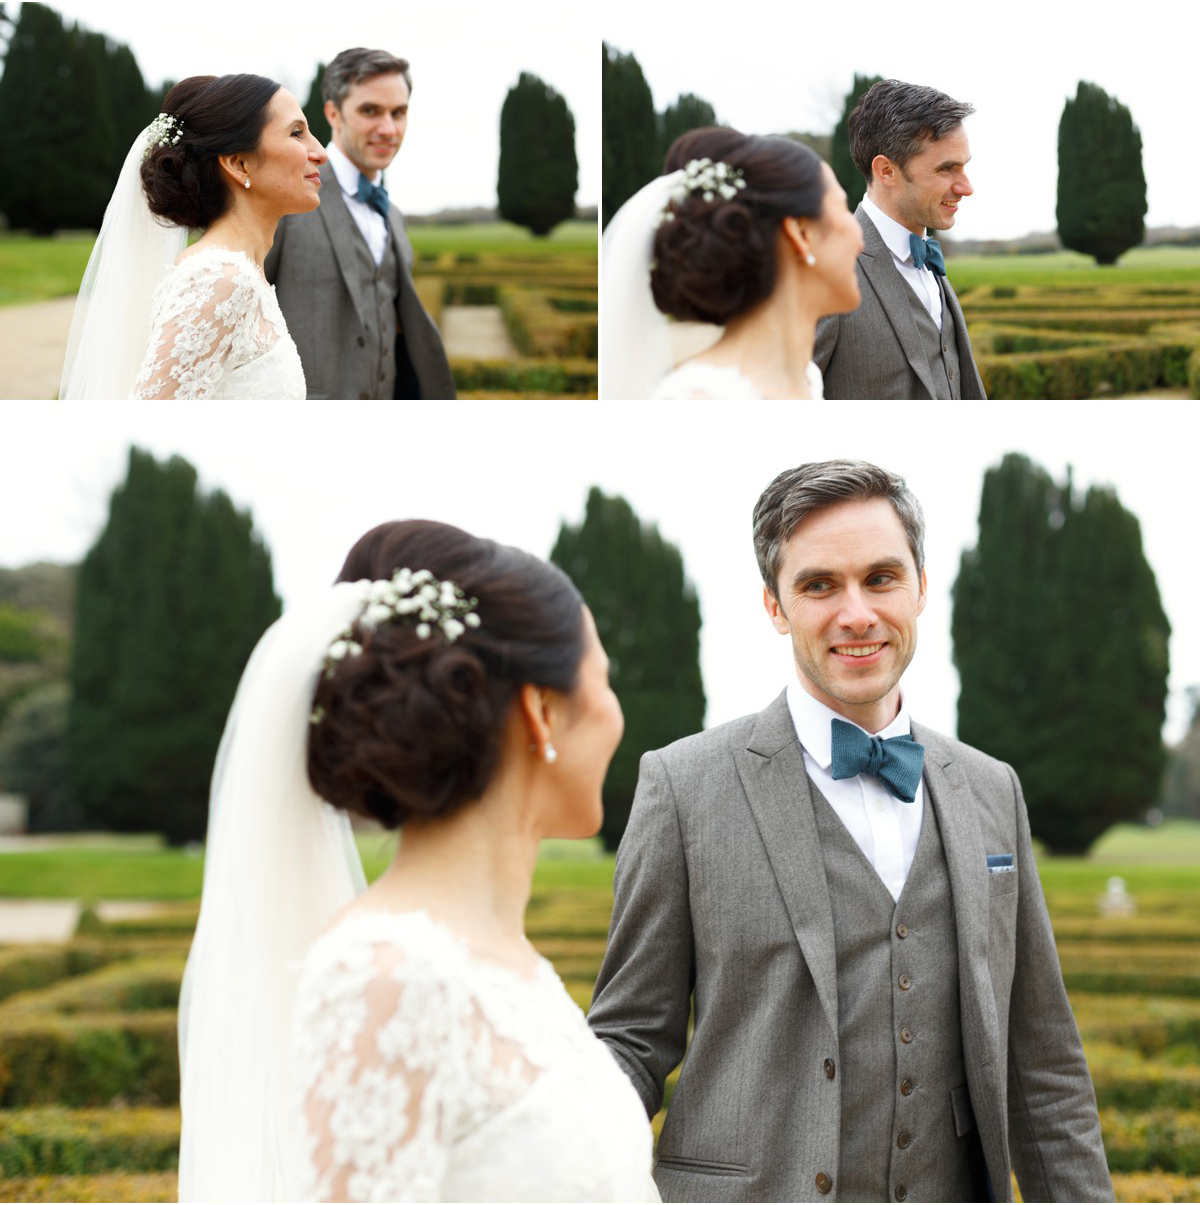 besotted groom